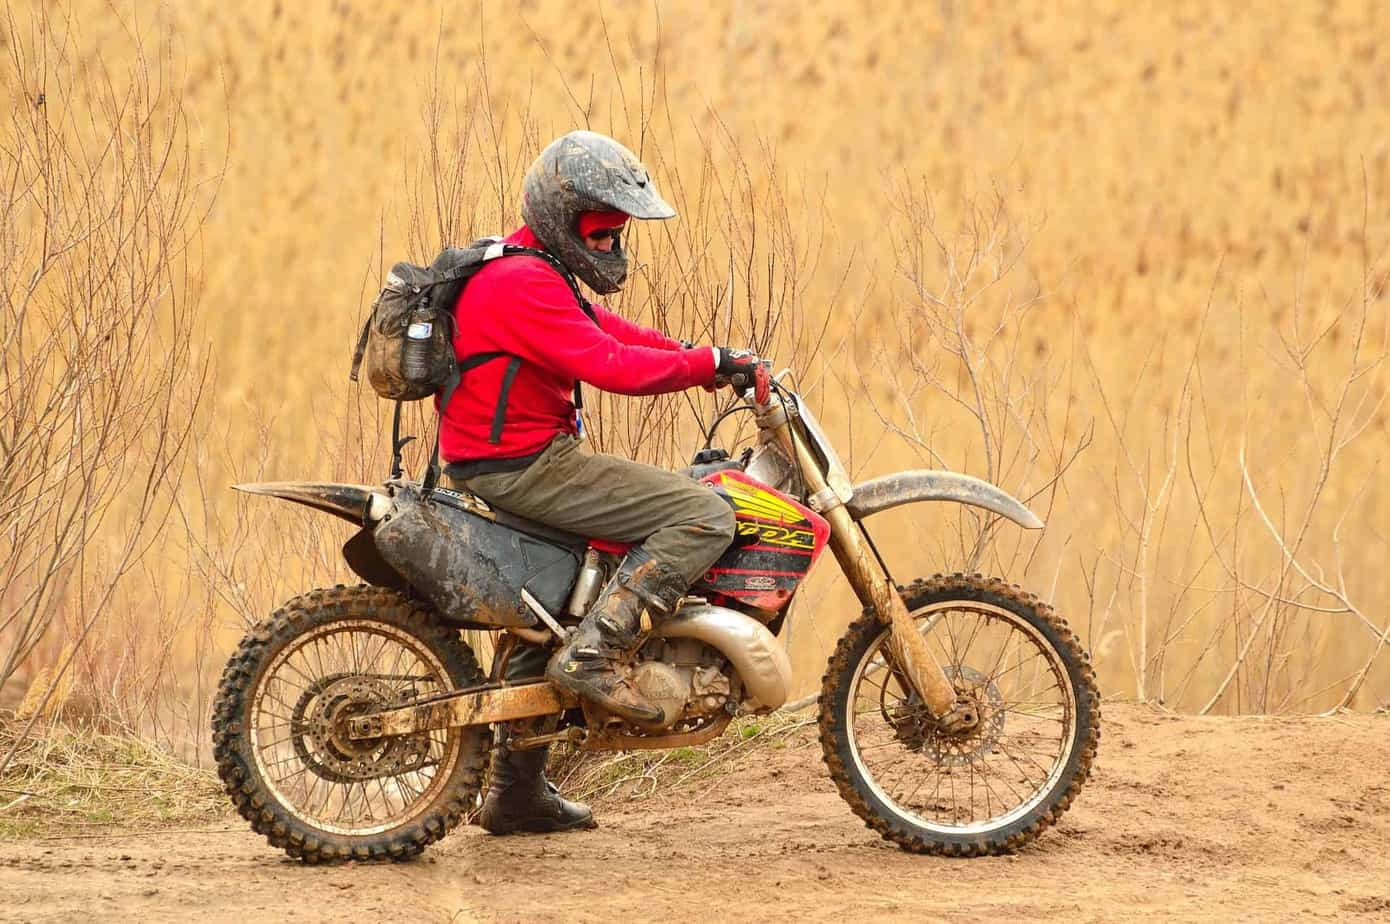 Offroad motorcycles: Best dirt bikes for beginners of all ages 8